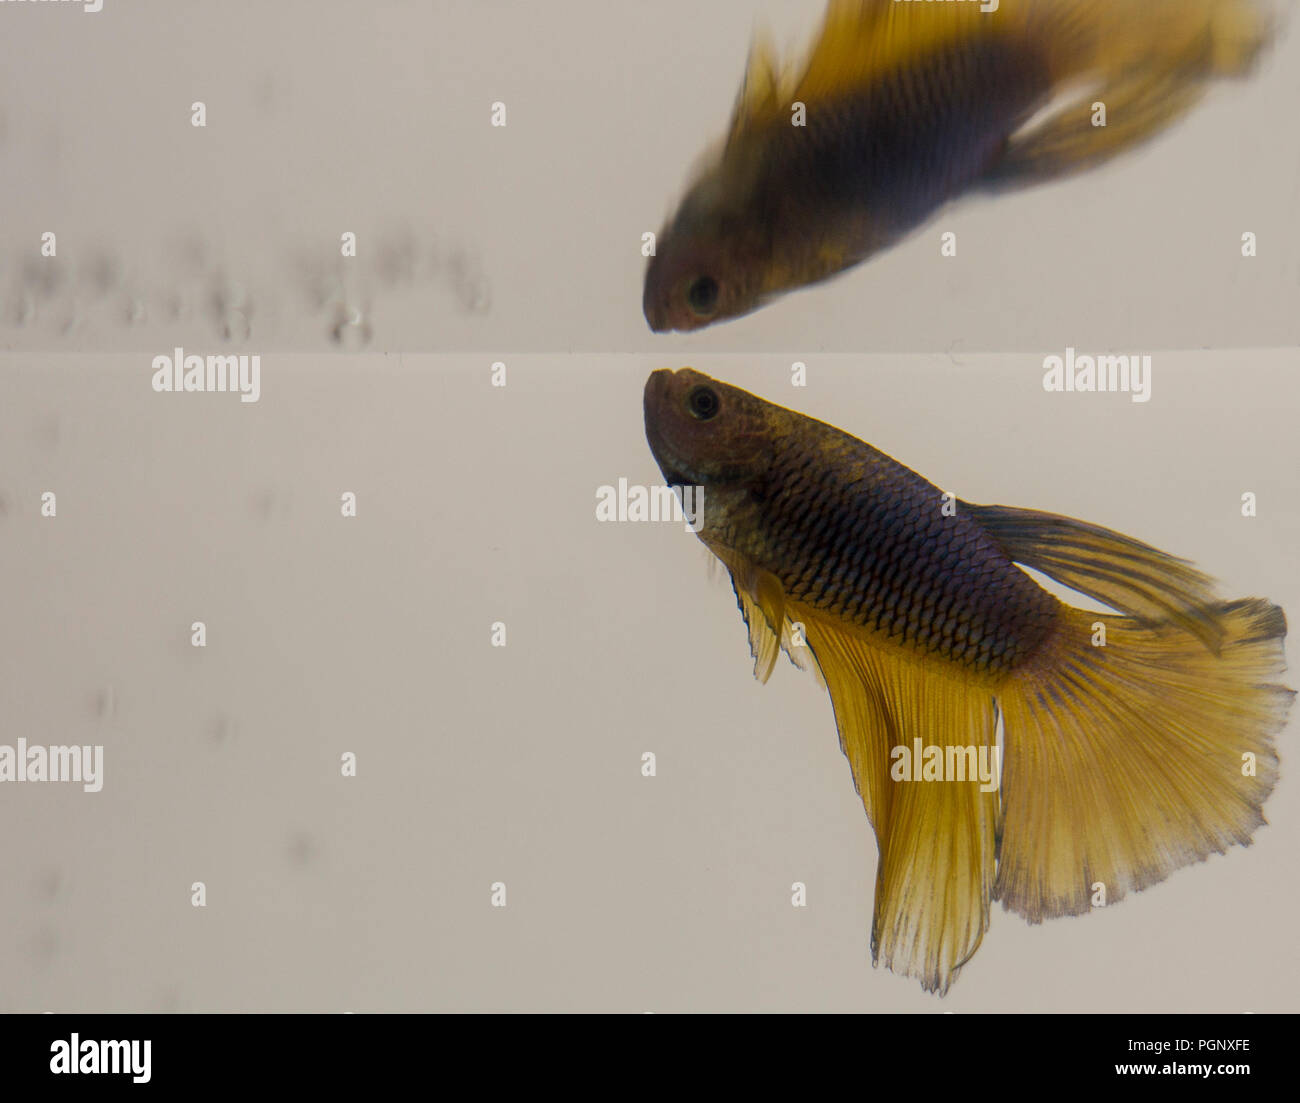 Siamese Fighting Fish Yellow Halfmoon Betta Splendens.Males build bubble nests of various sizes and thicknesses at the surface of water. Do this regul Stock Photo